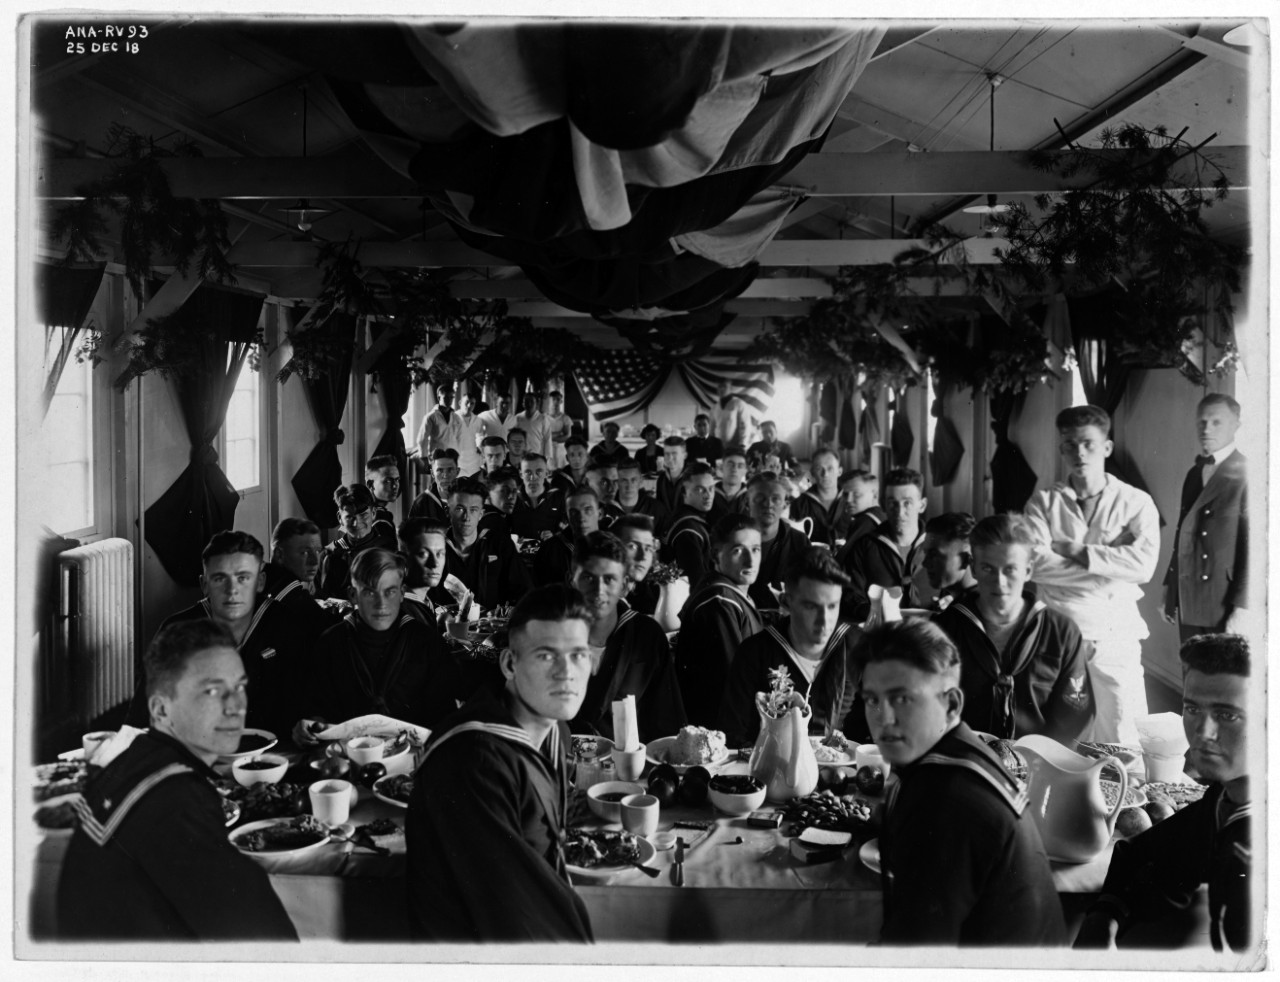 Christmas dinner at Naval Air Station (NAS) Anacostia, D.C., 25 December 1918